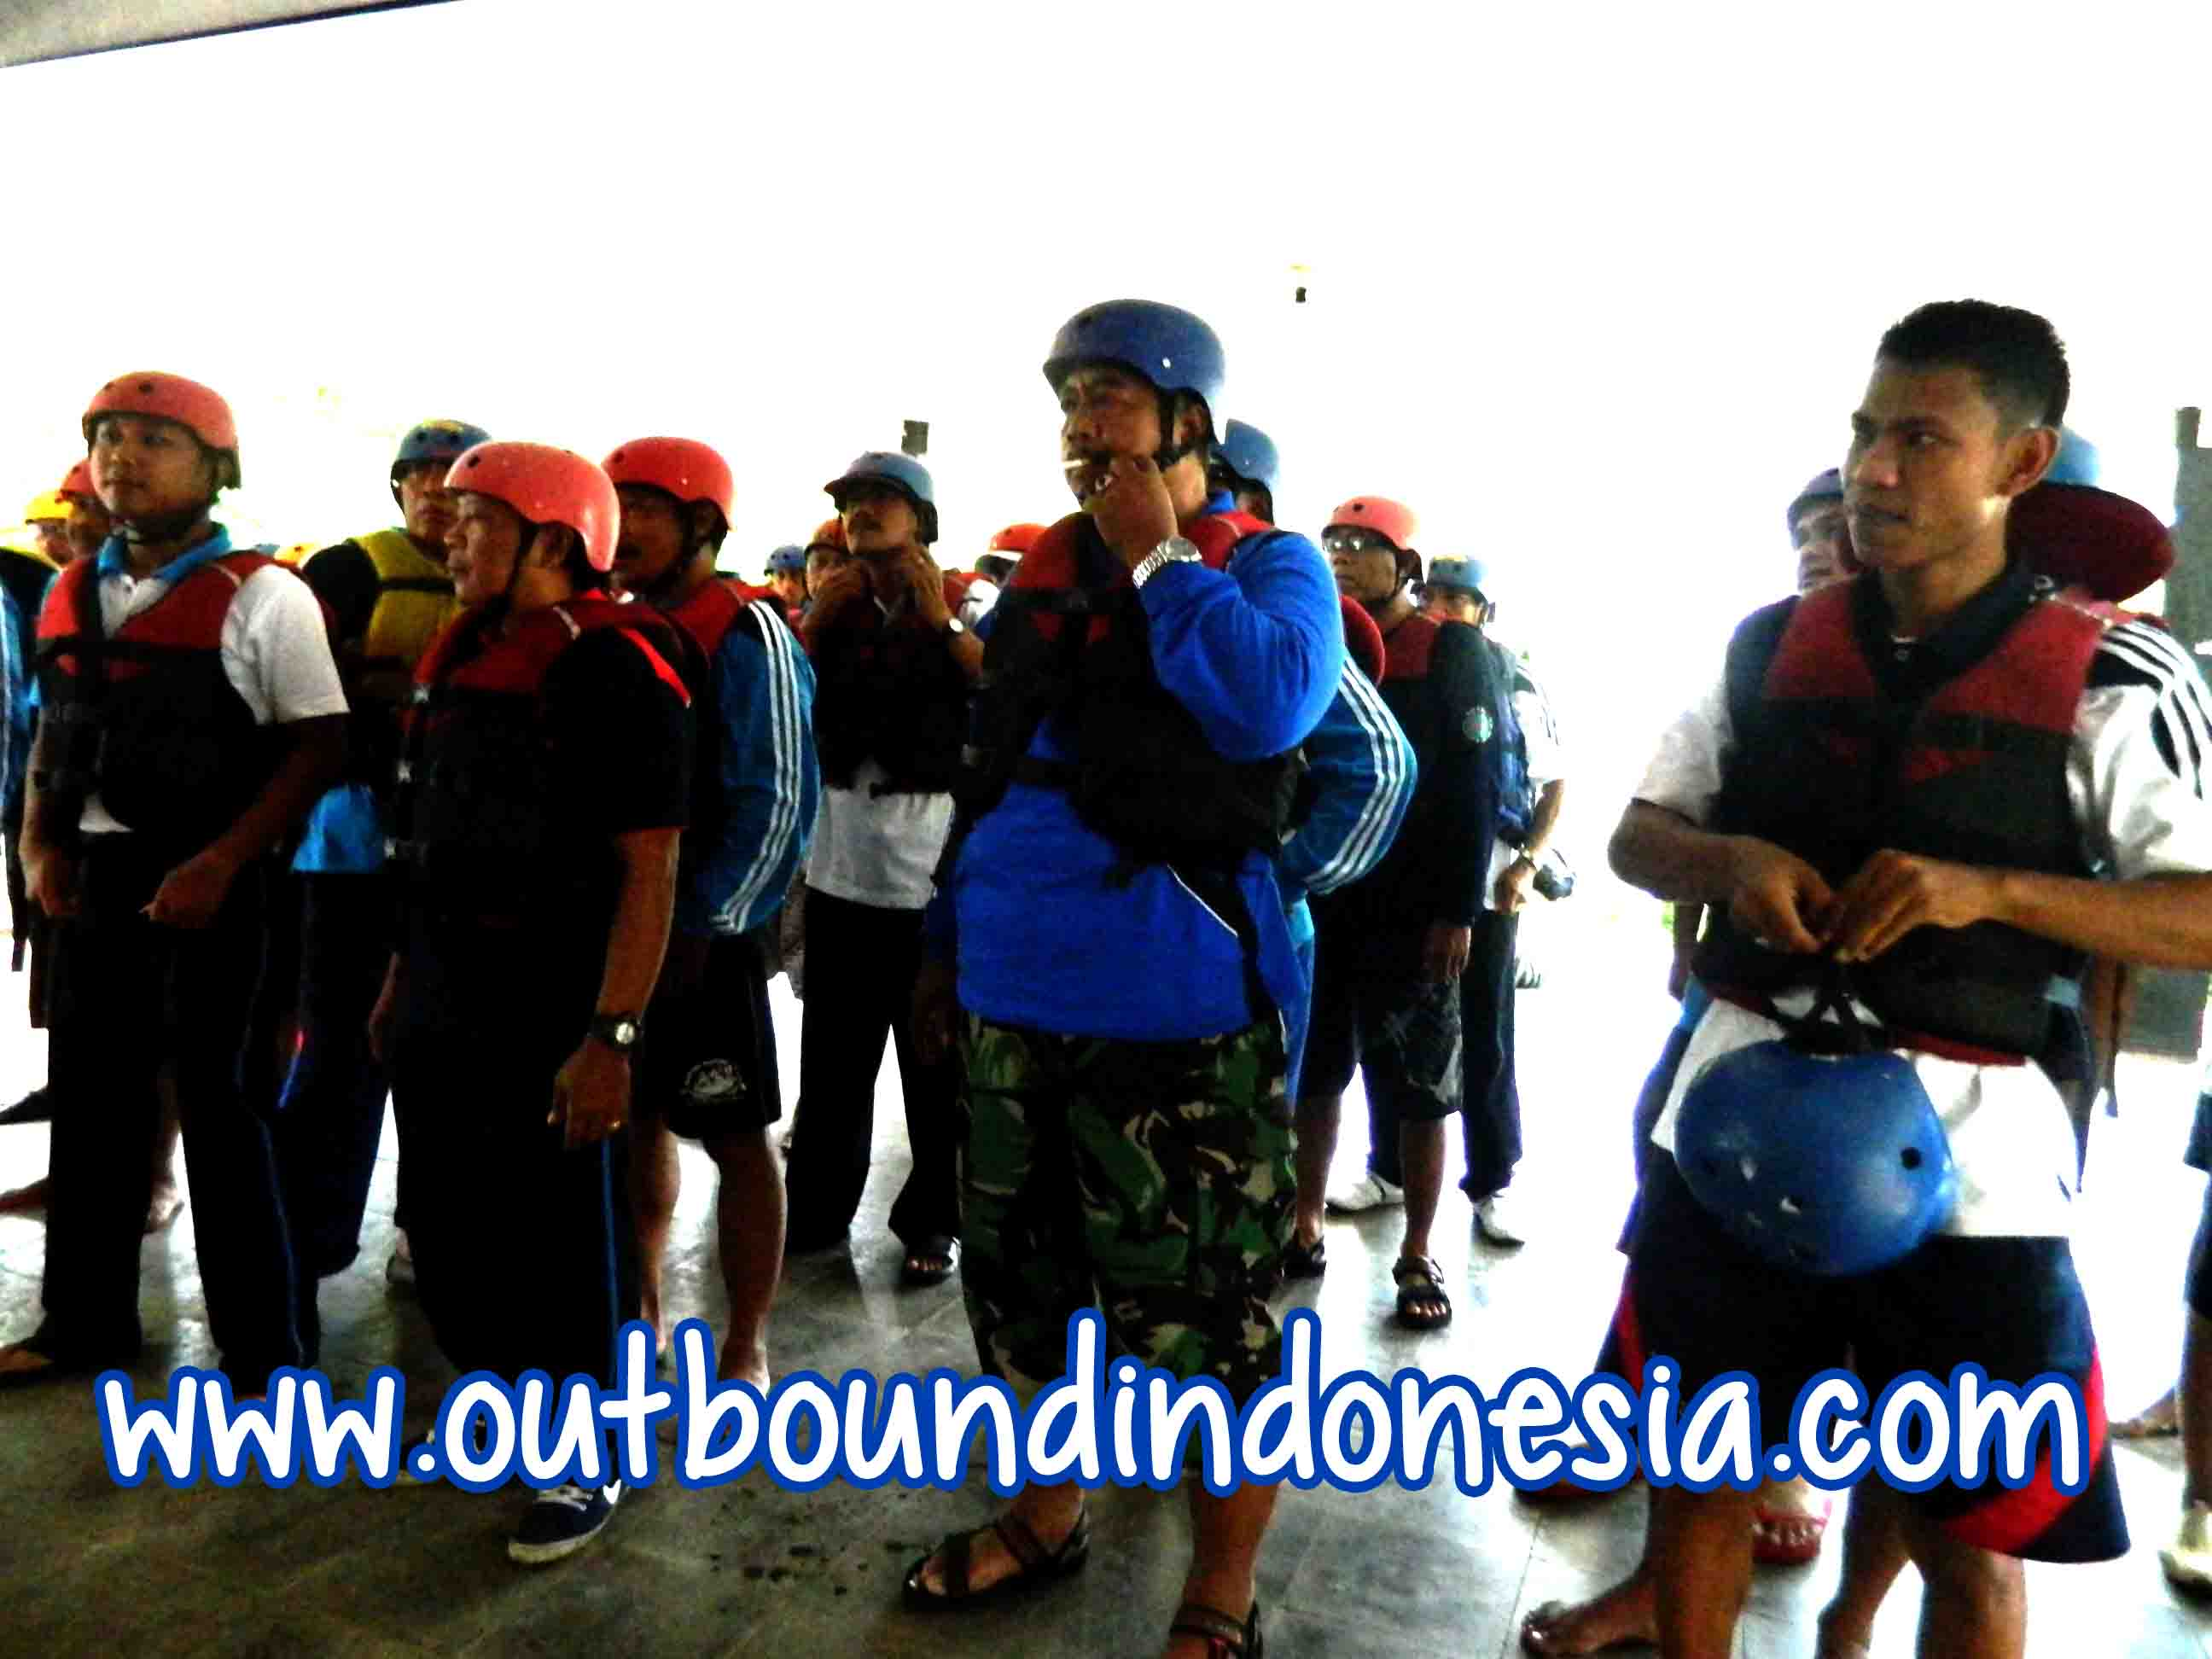 kampung rafting, www.outboundindonesia.com, 087 836 152 078